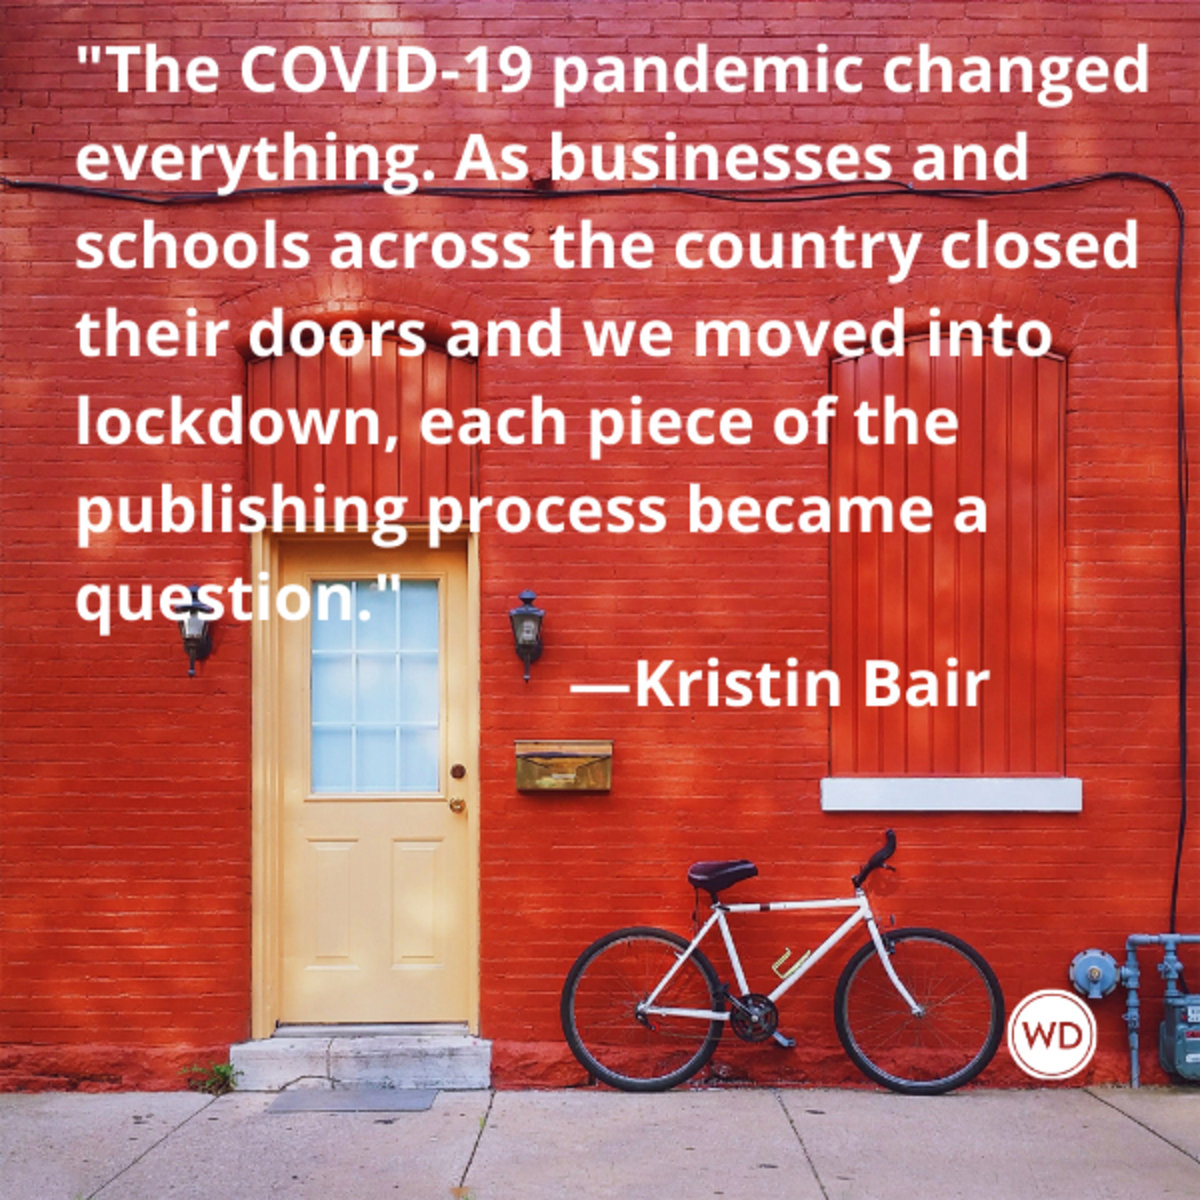 kristin_bair_quotes_the_covid_19_pandemic_changed_everything